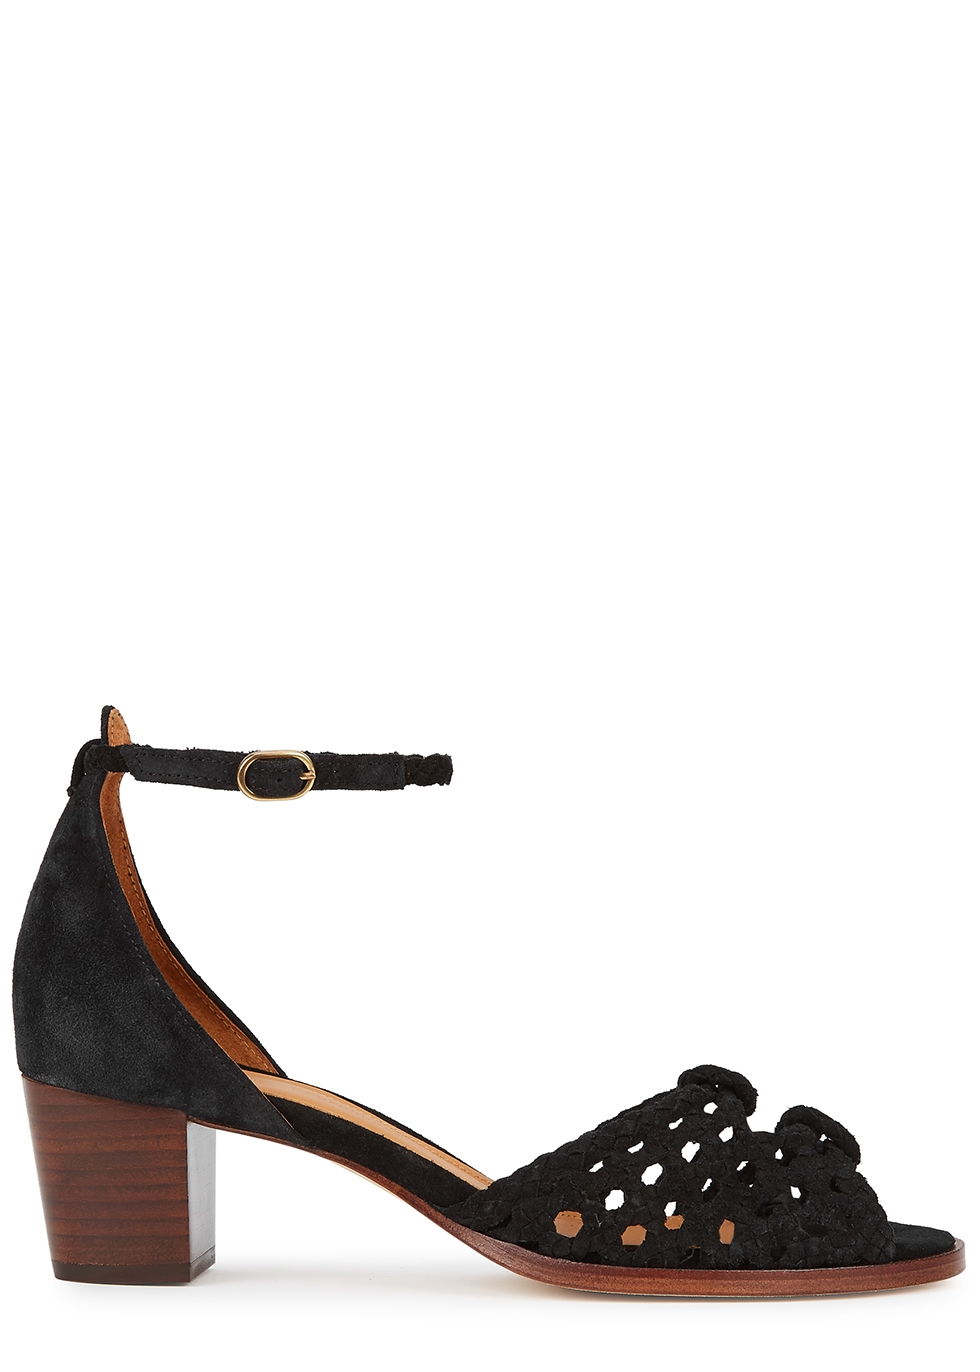 Lucy 45 black suede sandals